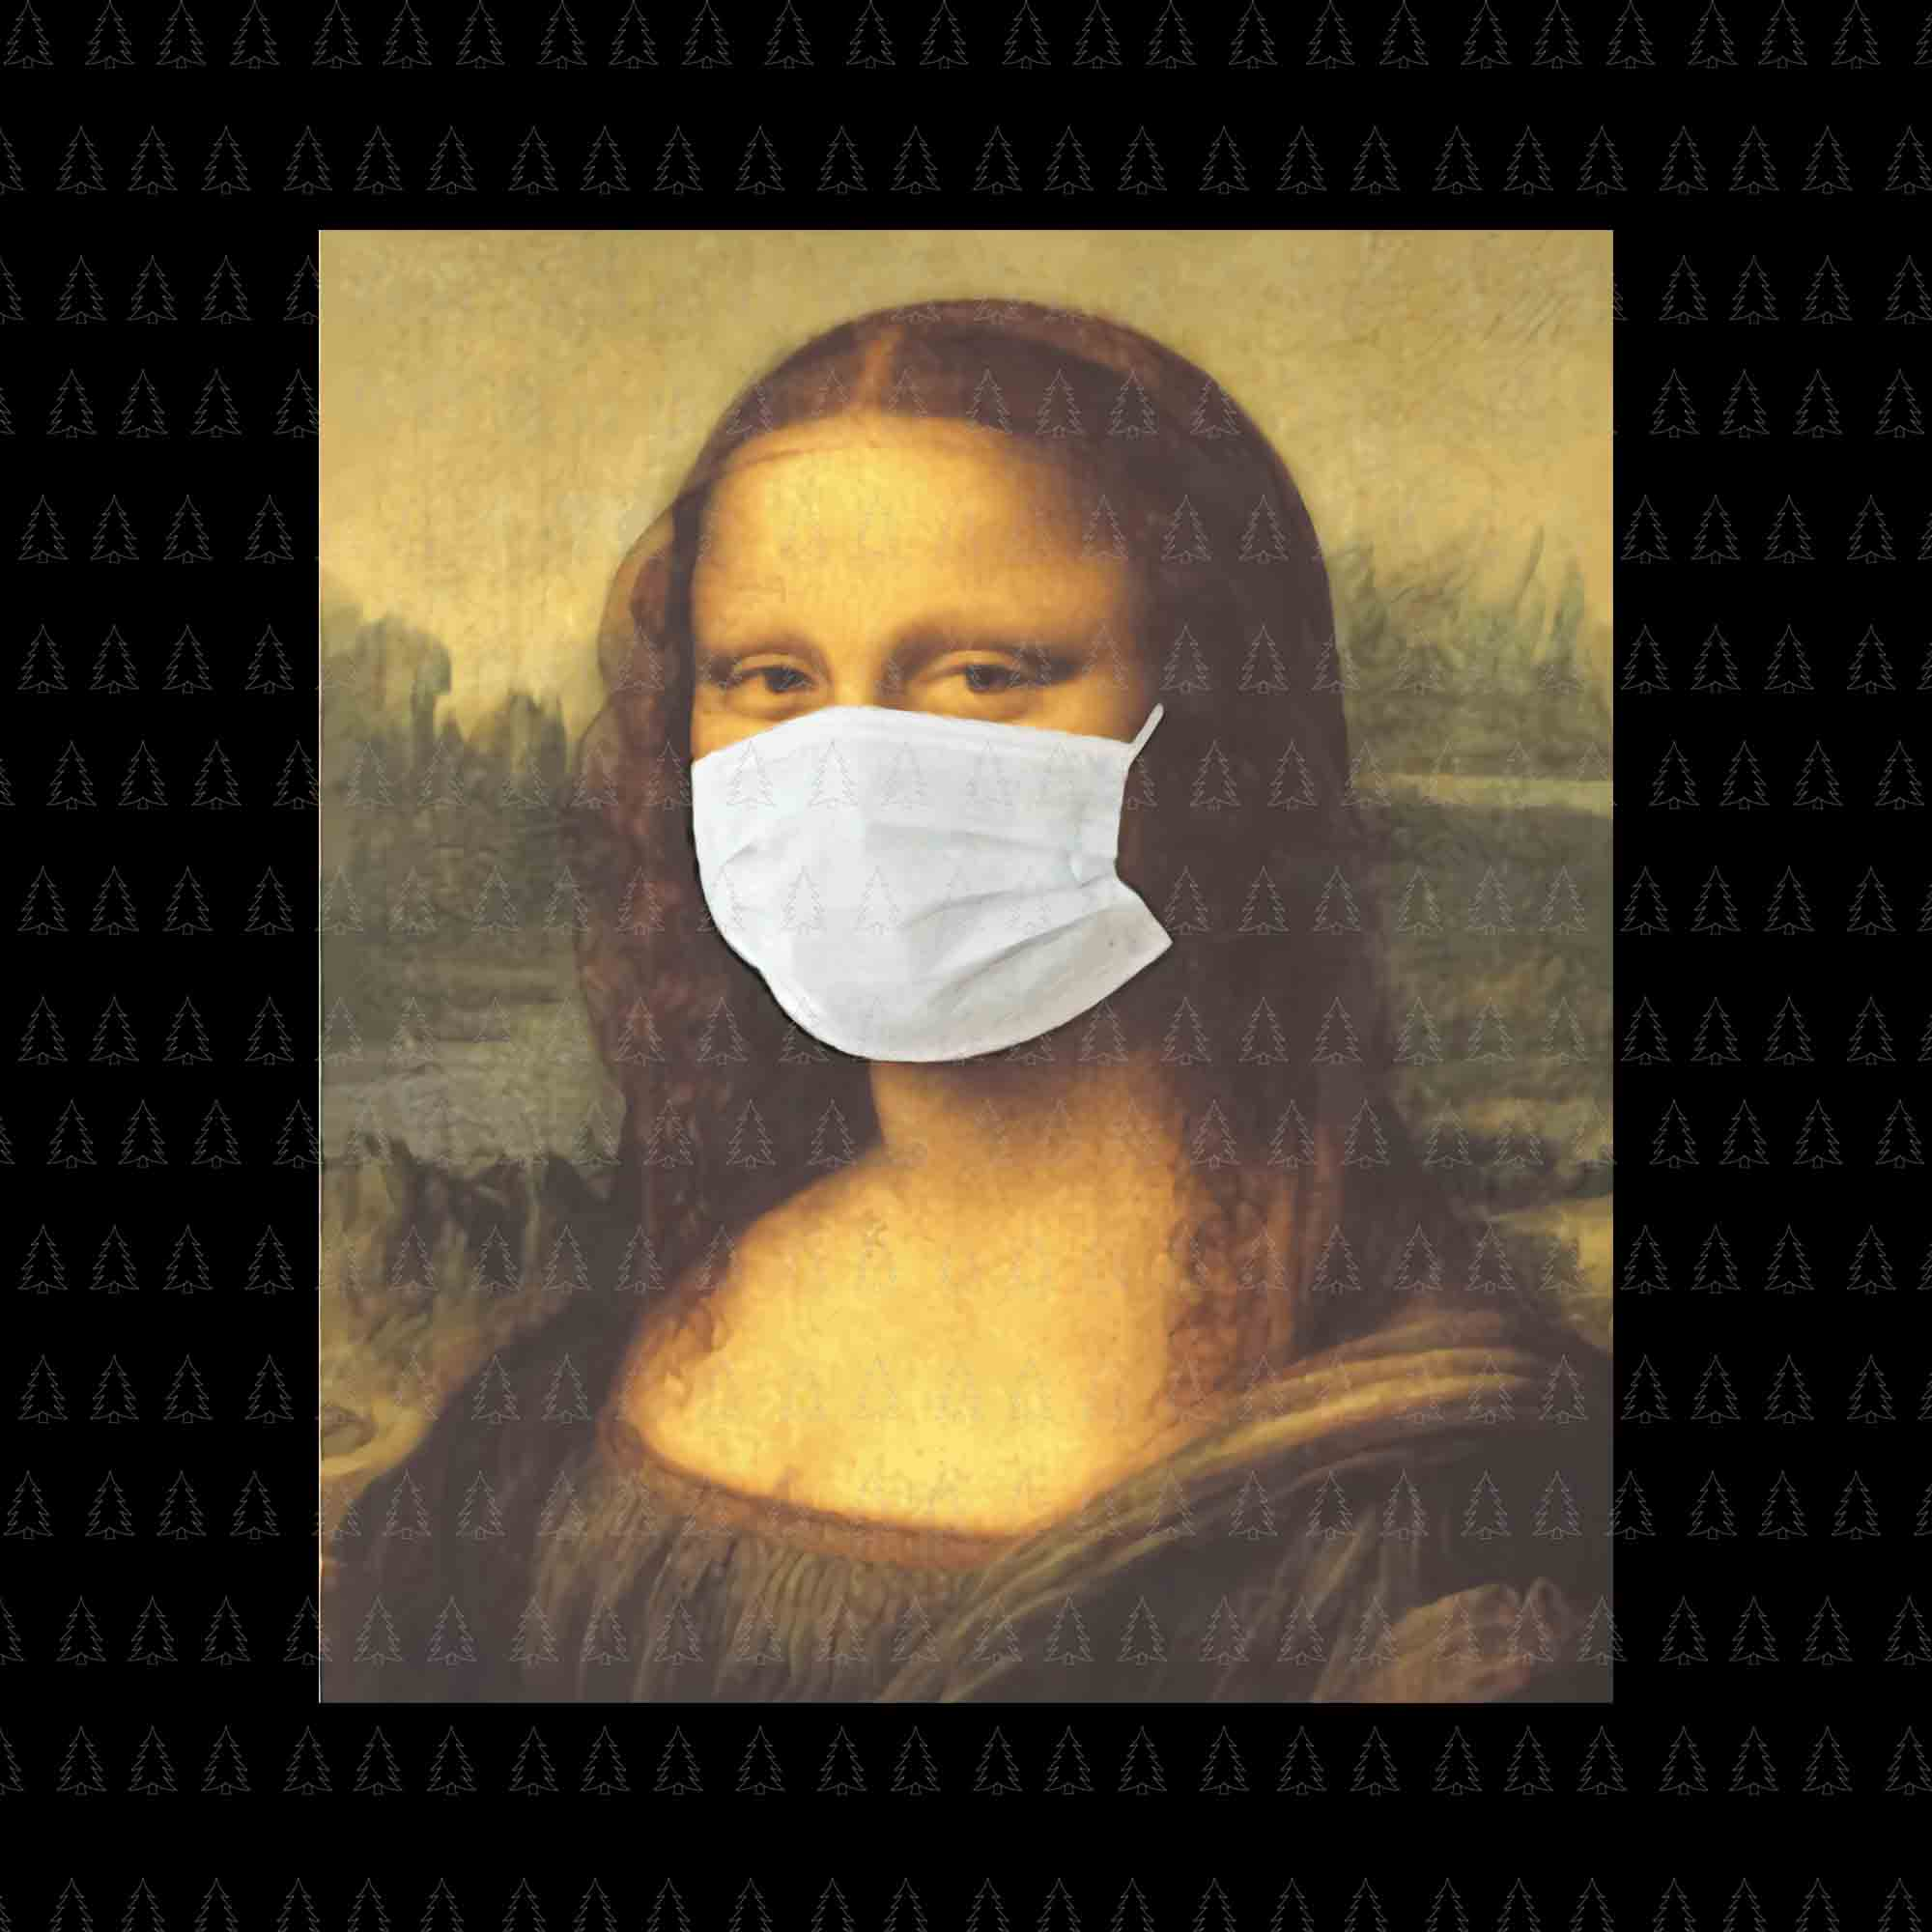 Mona lisa mask png, mona lisa mask vector, mona lisa mask jpg, mona lisa mask design tshirt, mona lisa design